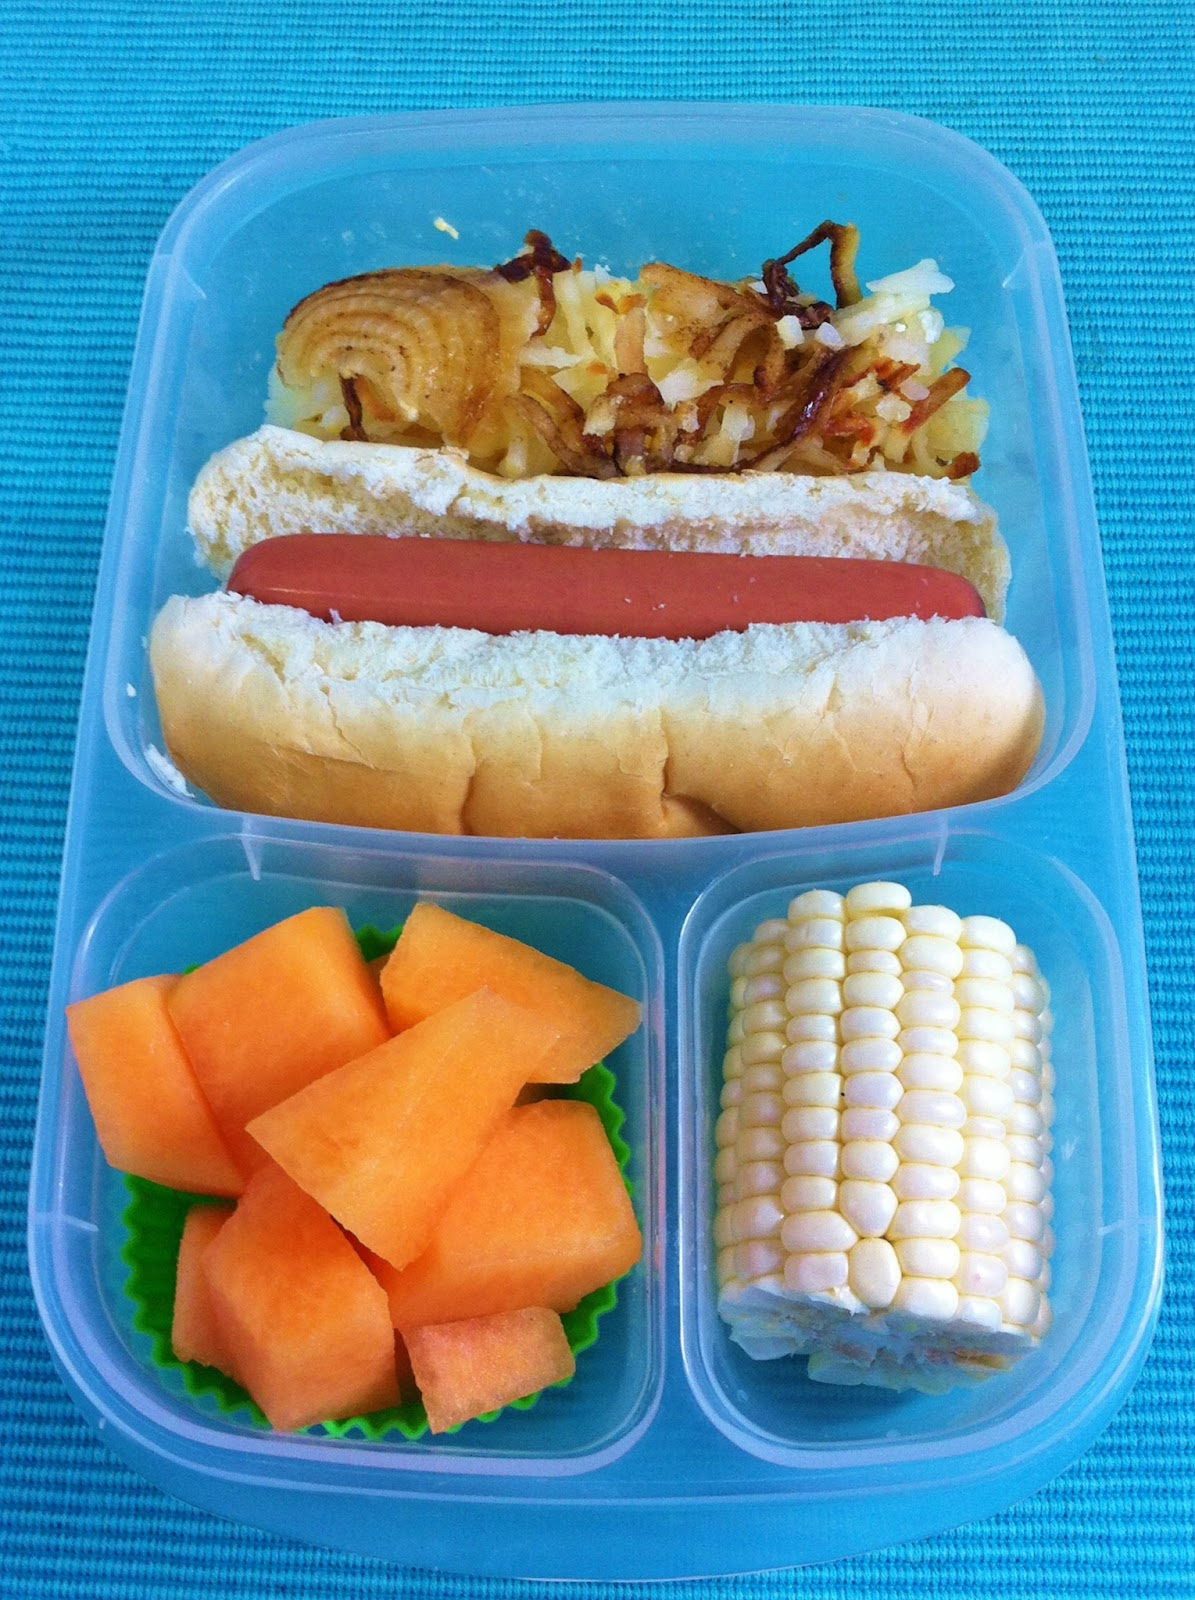 Operation lunch box day 169 hot dog lunch day 169 hot dog lunch forumfinder Gallery